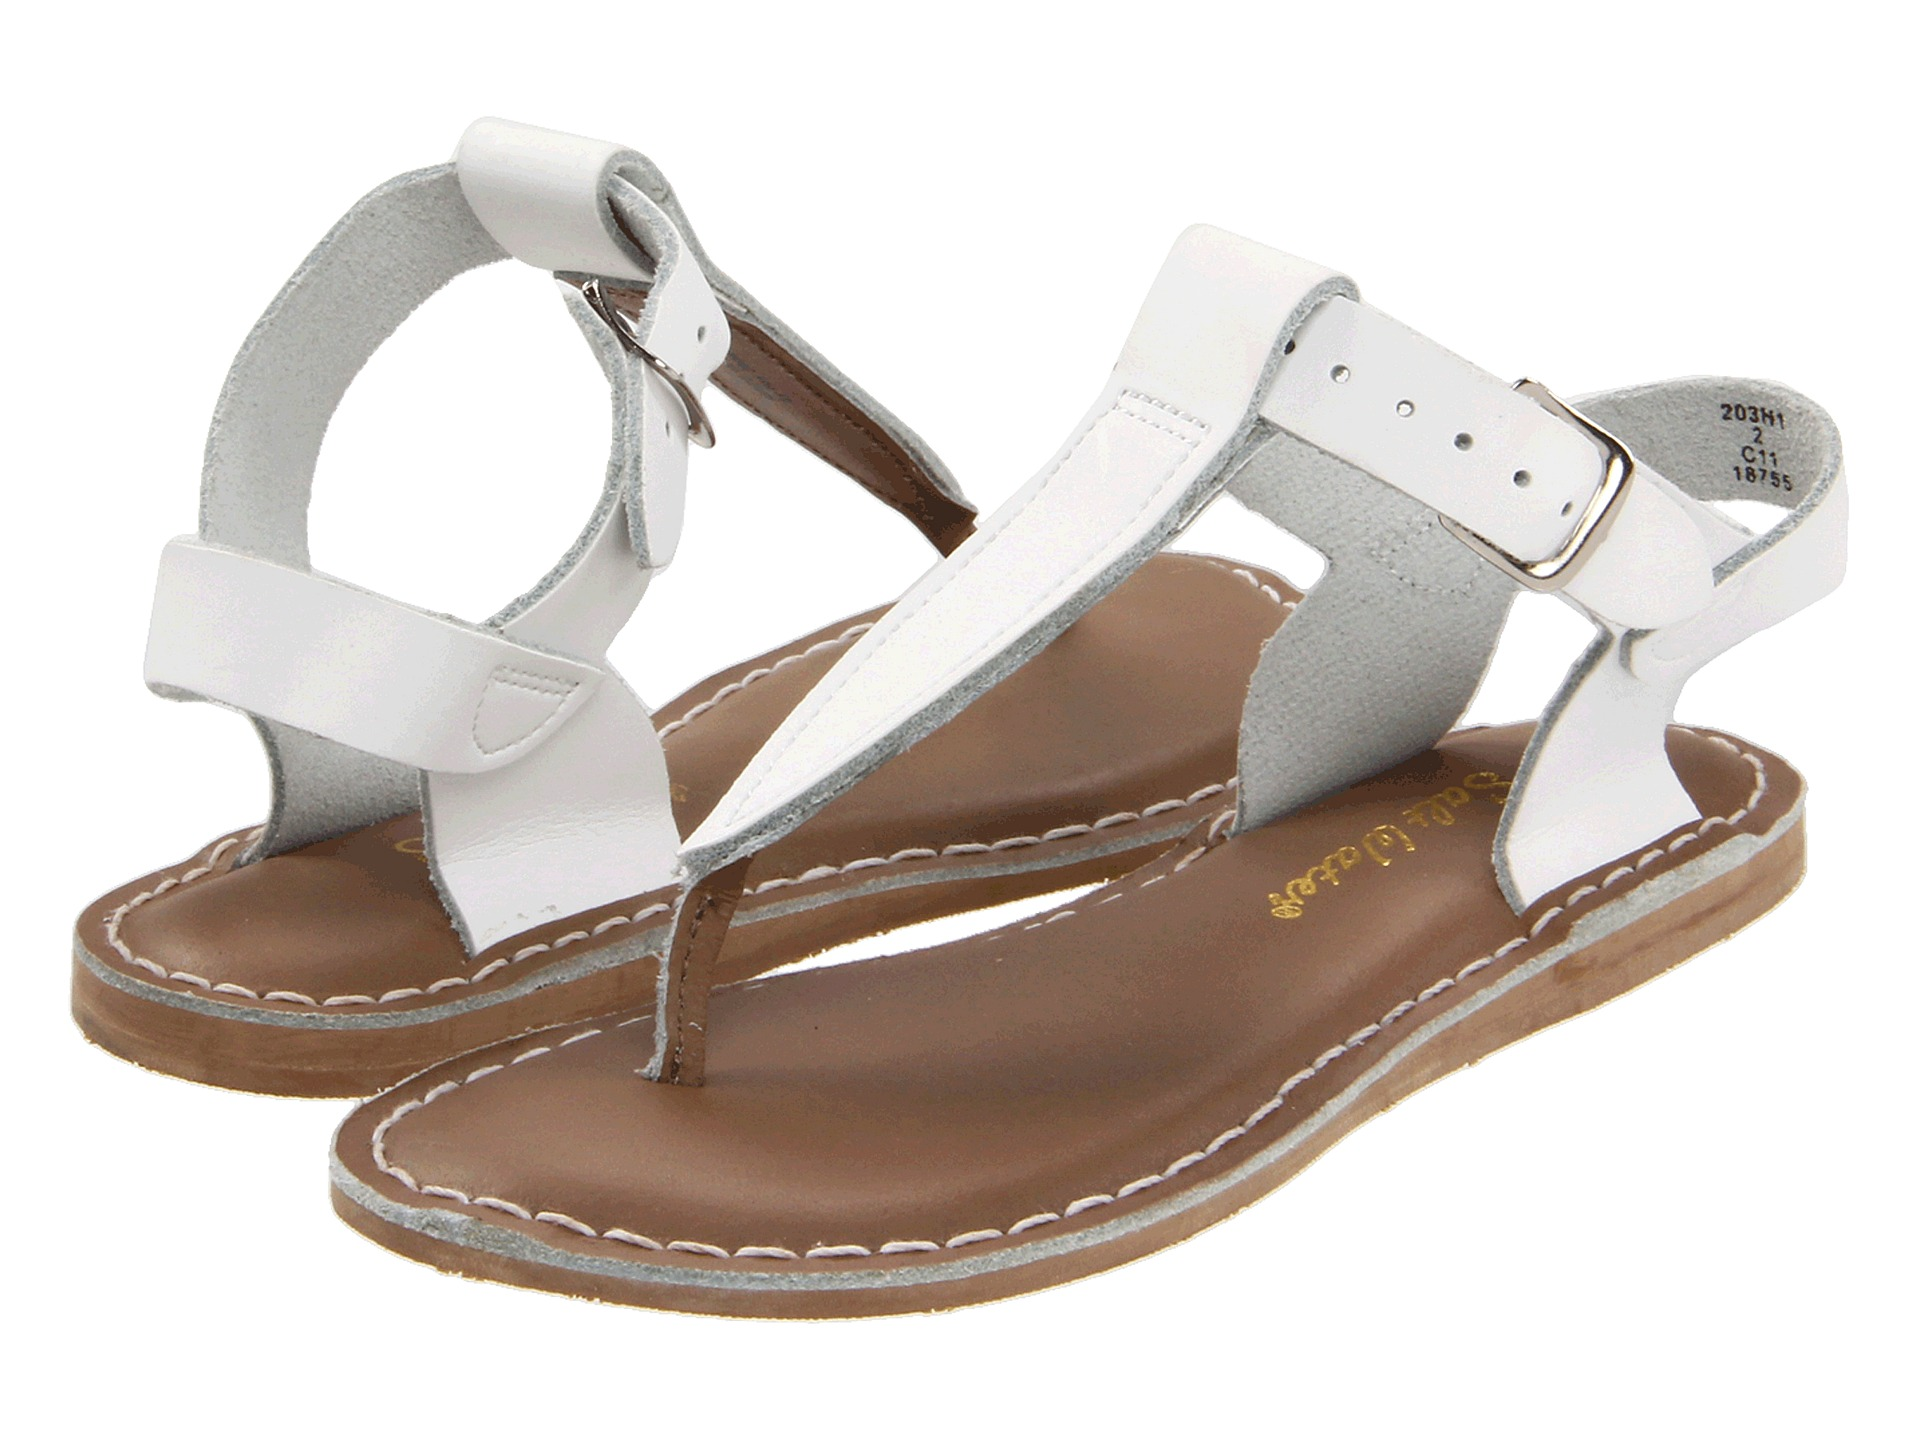 salt water sandal by hoy shoes sun san t thongs toddler little kid free. Black Bedroom Furniture Sets. Home Design Ideas